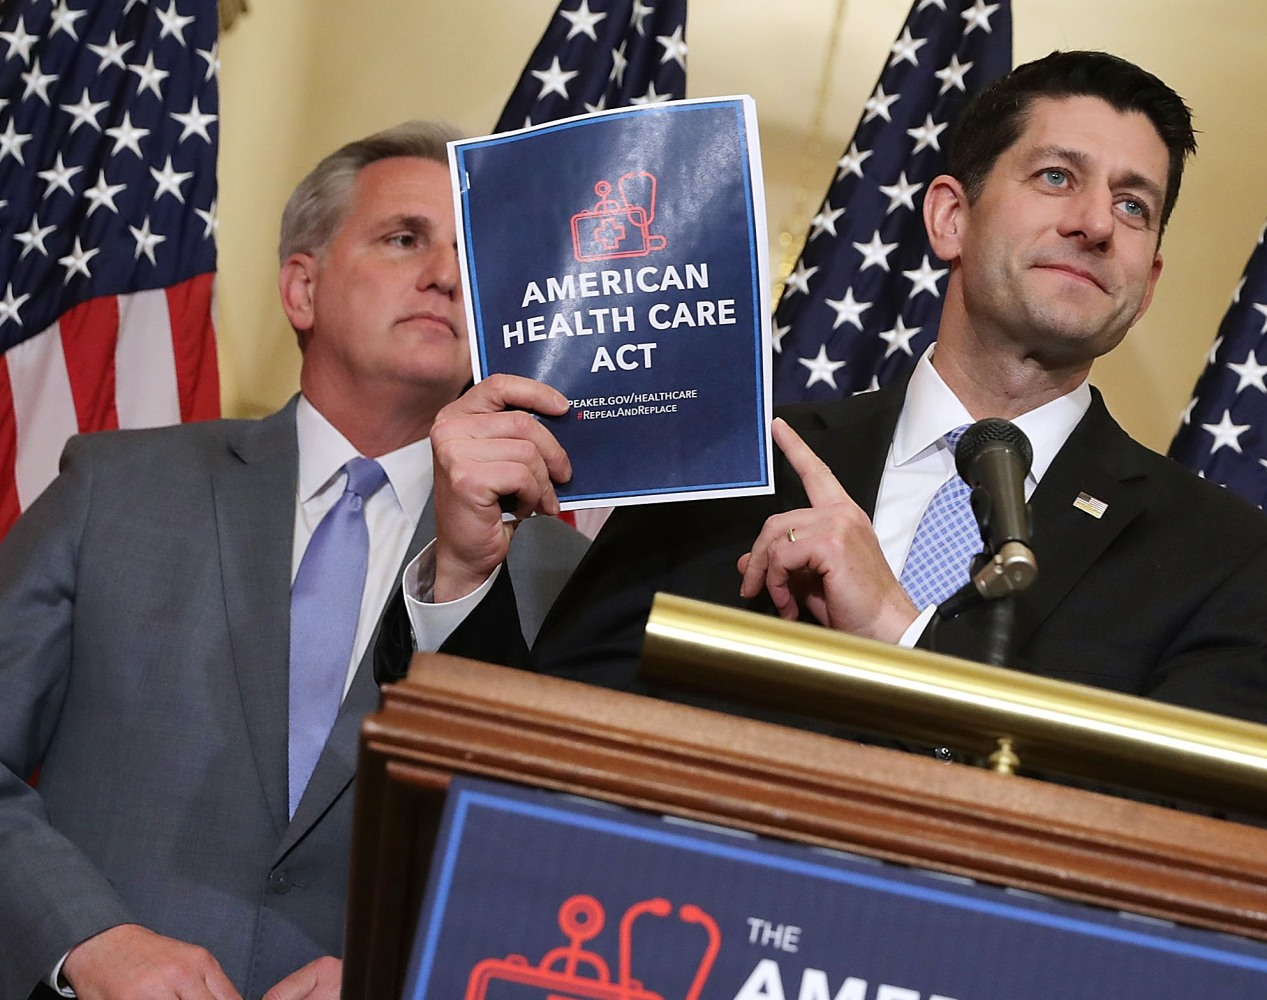 American Health Care act must be opposed